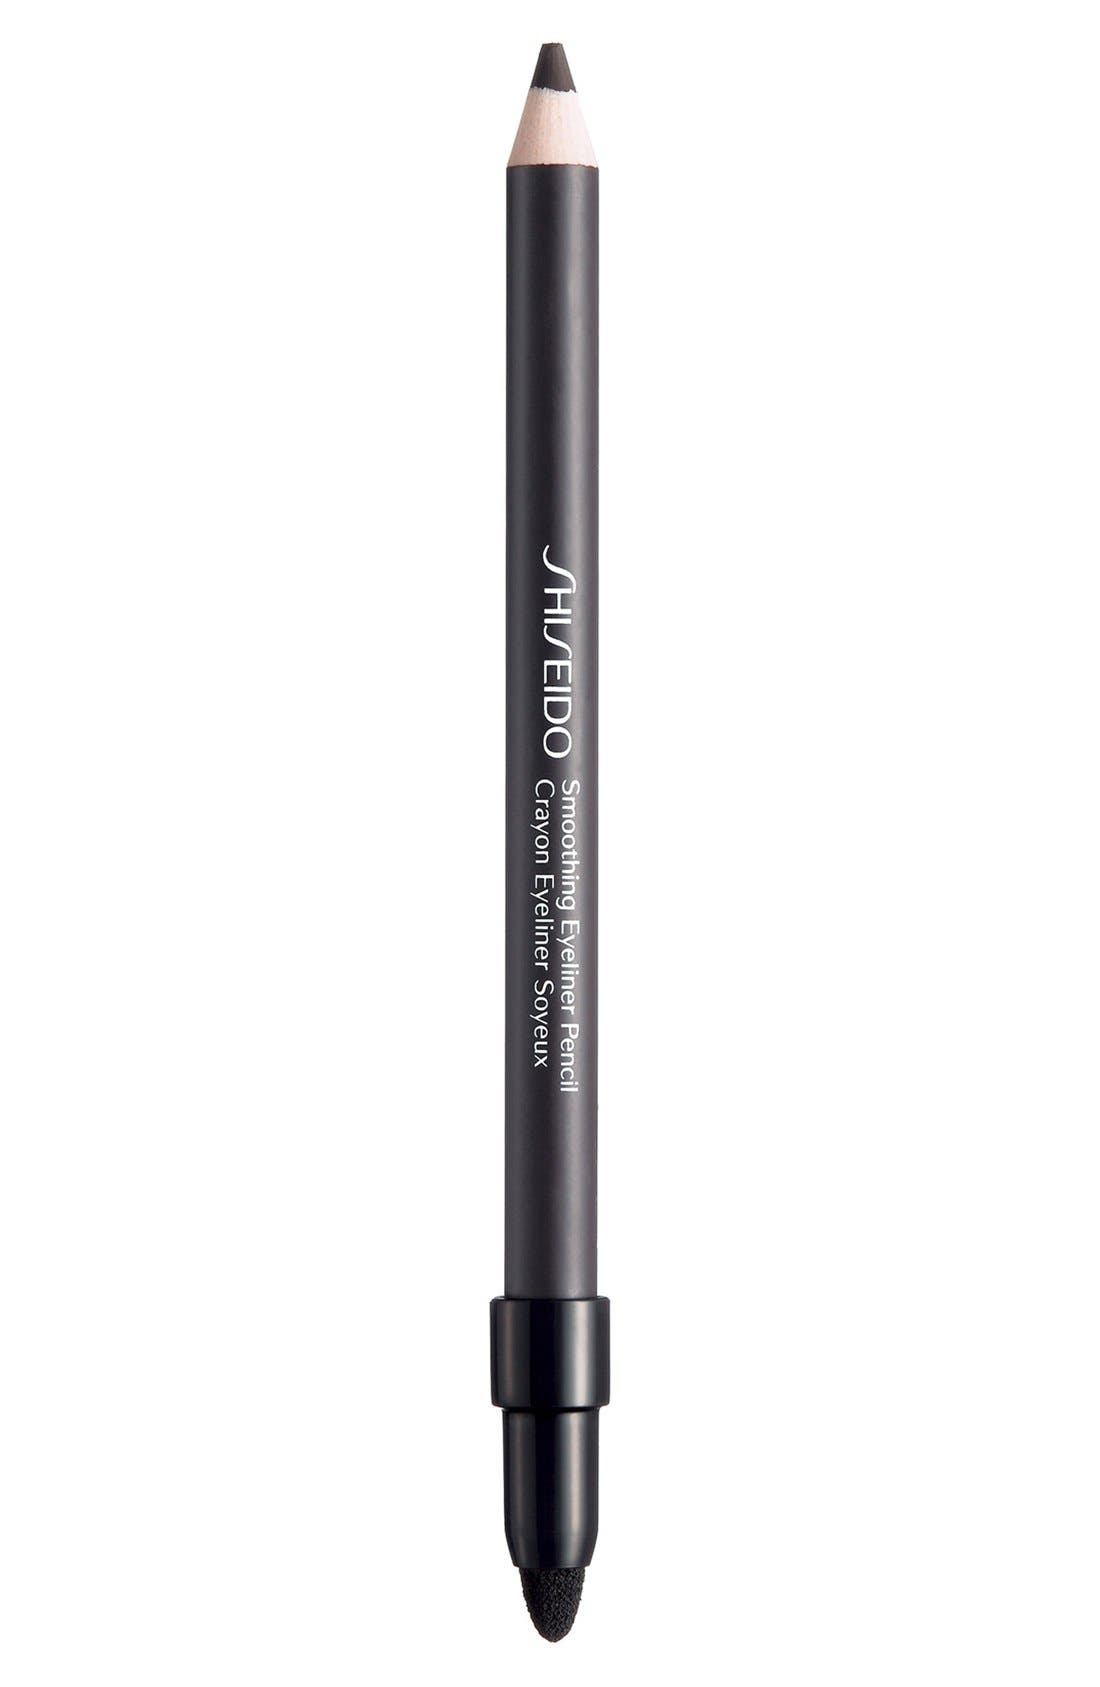 'The Makeup' Smoothing Eyeliner Pencil,                             Alternate thumbnail 3, color,                             001